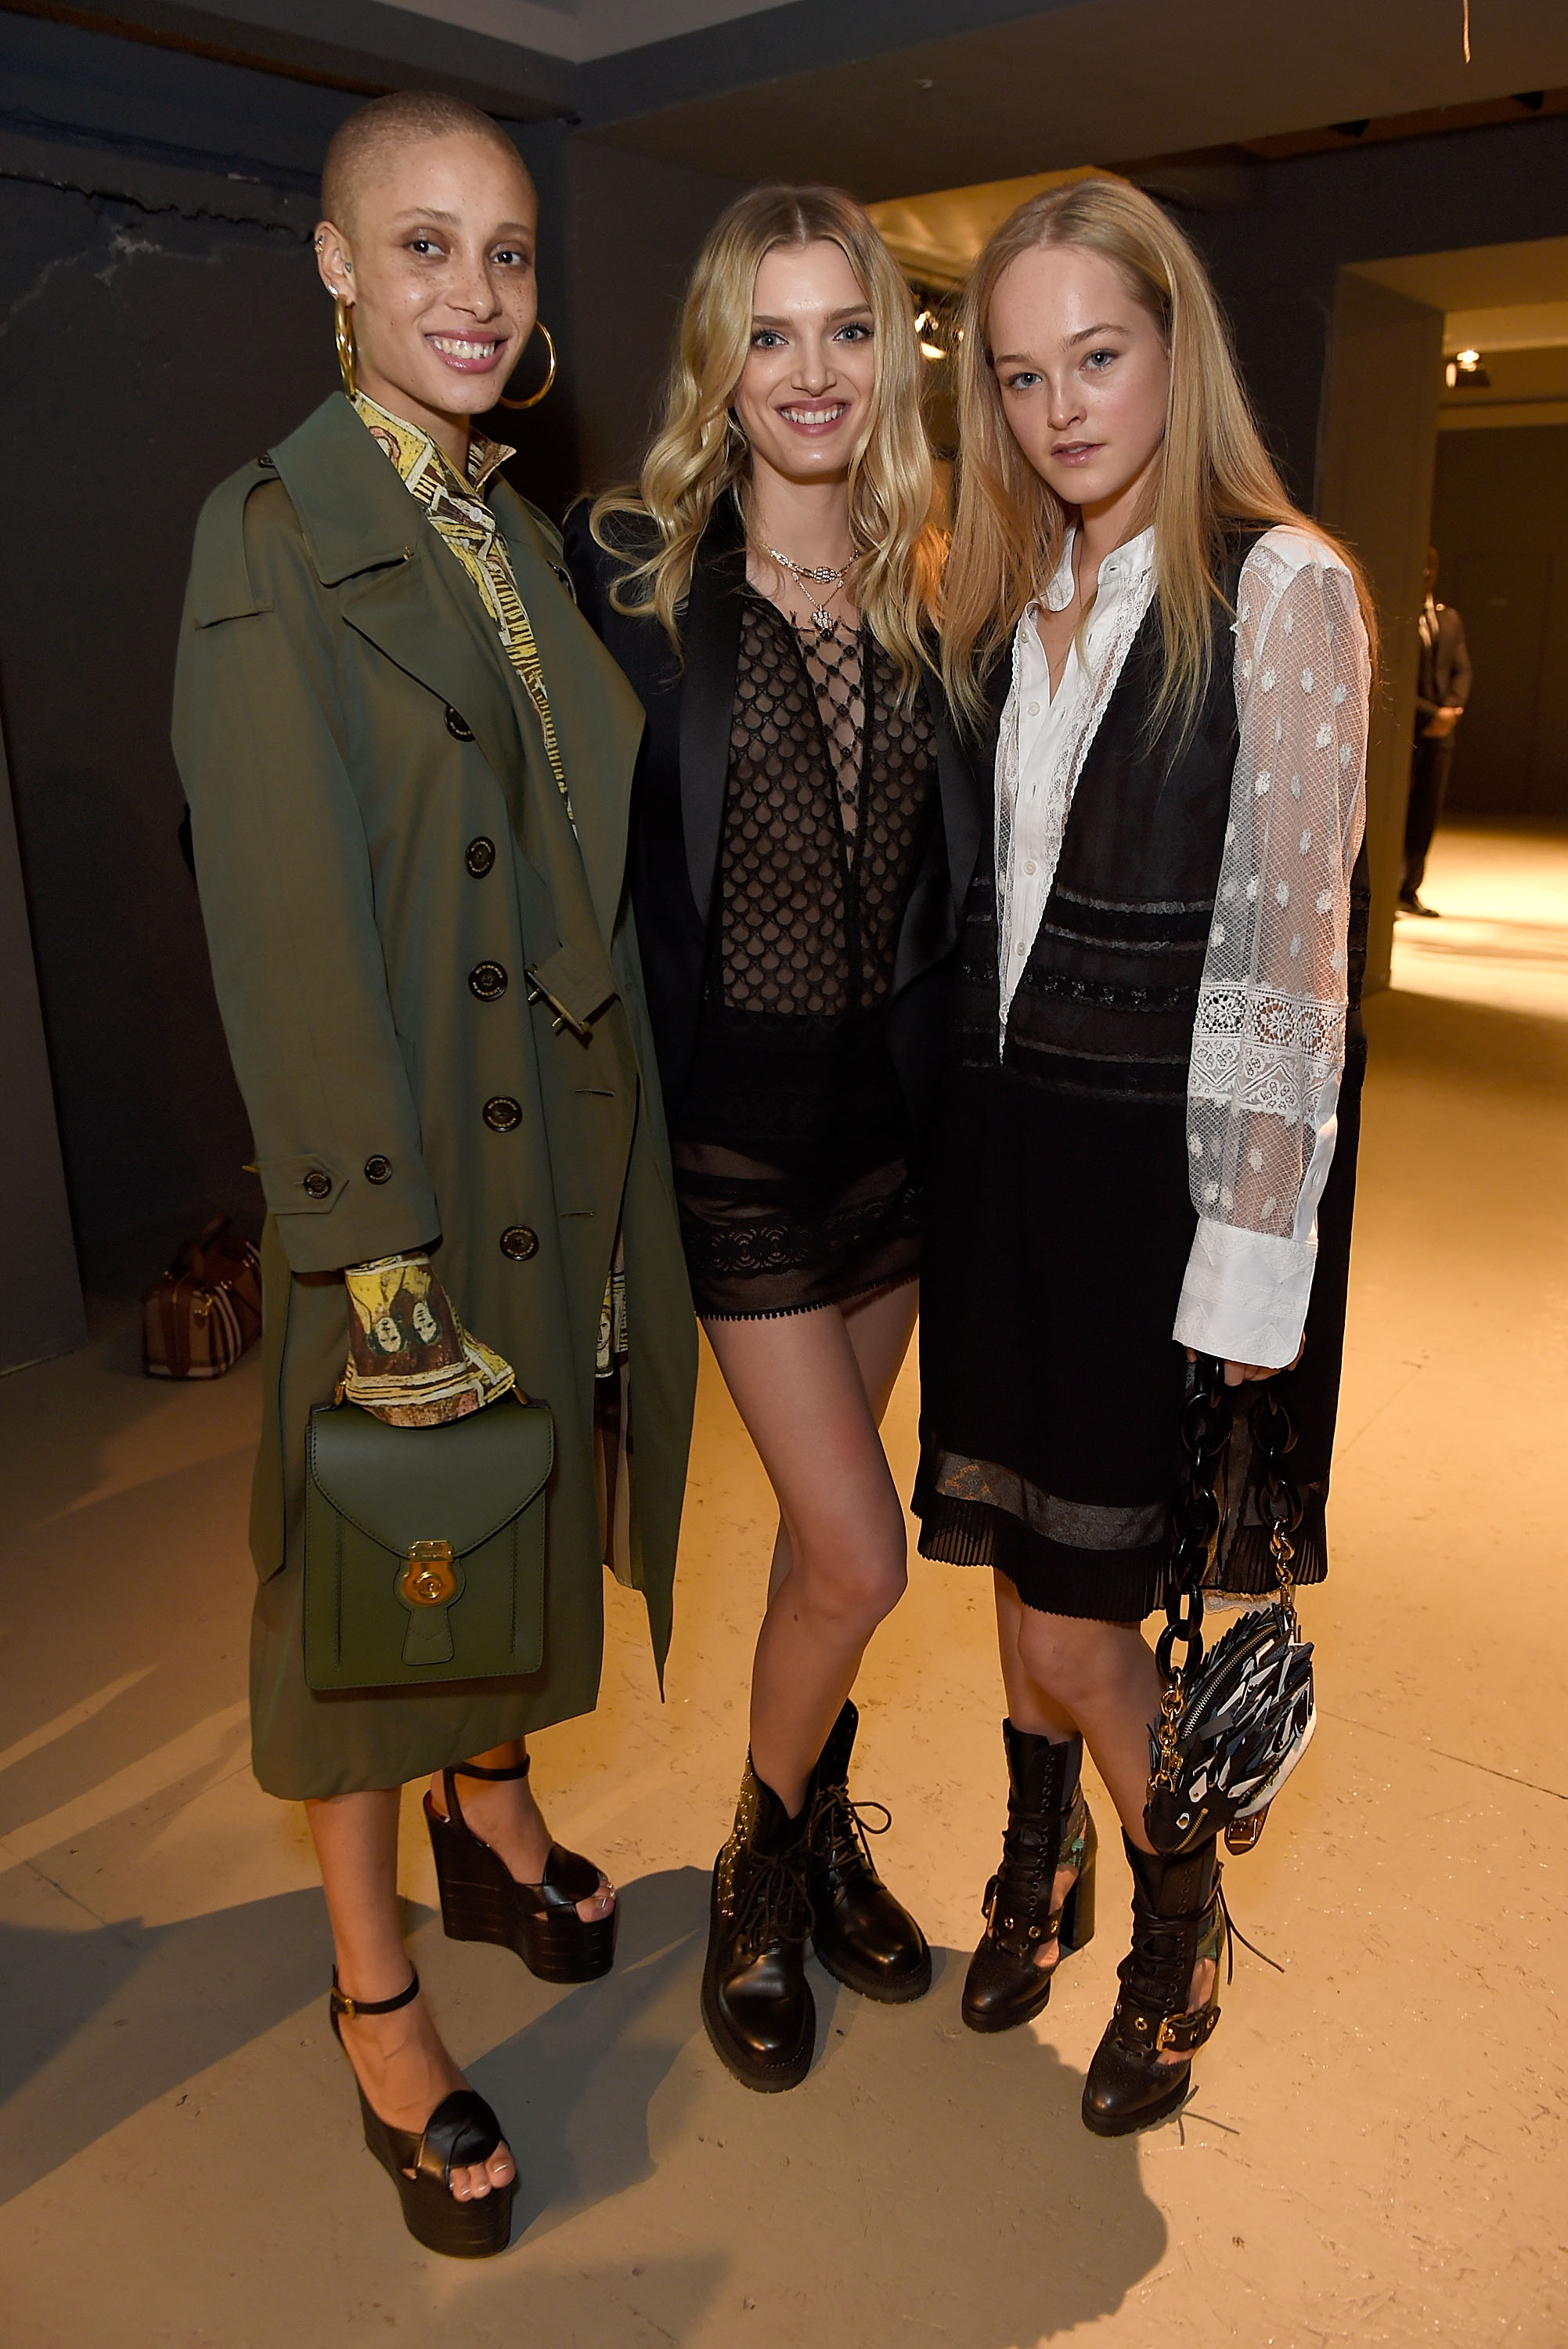 LONDON, ENGLAND - FEBRUARY 20:  (L-R) Adwoa Aboah, Lily Donaldson and Jean Campbell wearing Burberry attend the Burberry February 2017 Show during London Fashion Week February 2017 at Makers House on February 20, 2017 in London, England.  (Photo by David M. Benett/Dave Benett/Getty Images for Burberry) *** Local Caption *** Adwoa Aboah; Lily Donaldson; Jean Campbell